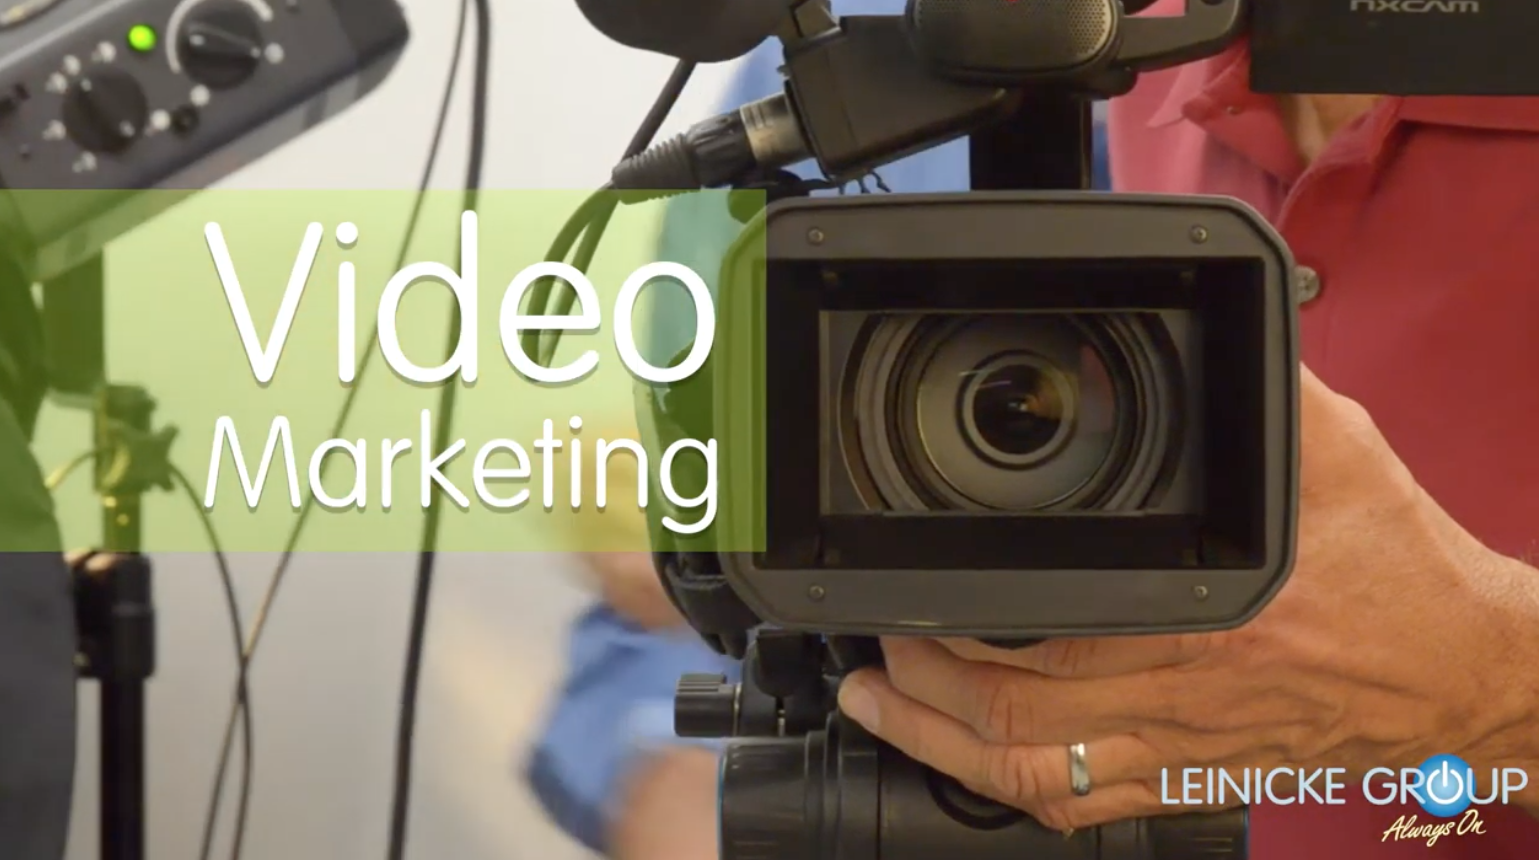 Leinicke Group Video Marketing